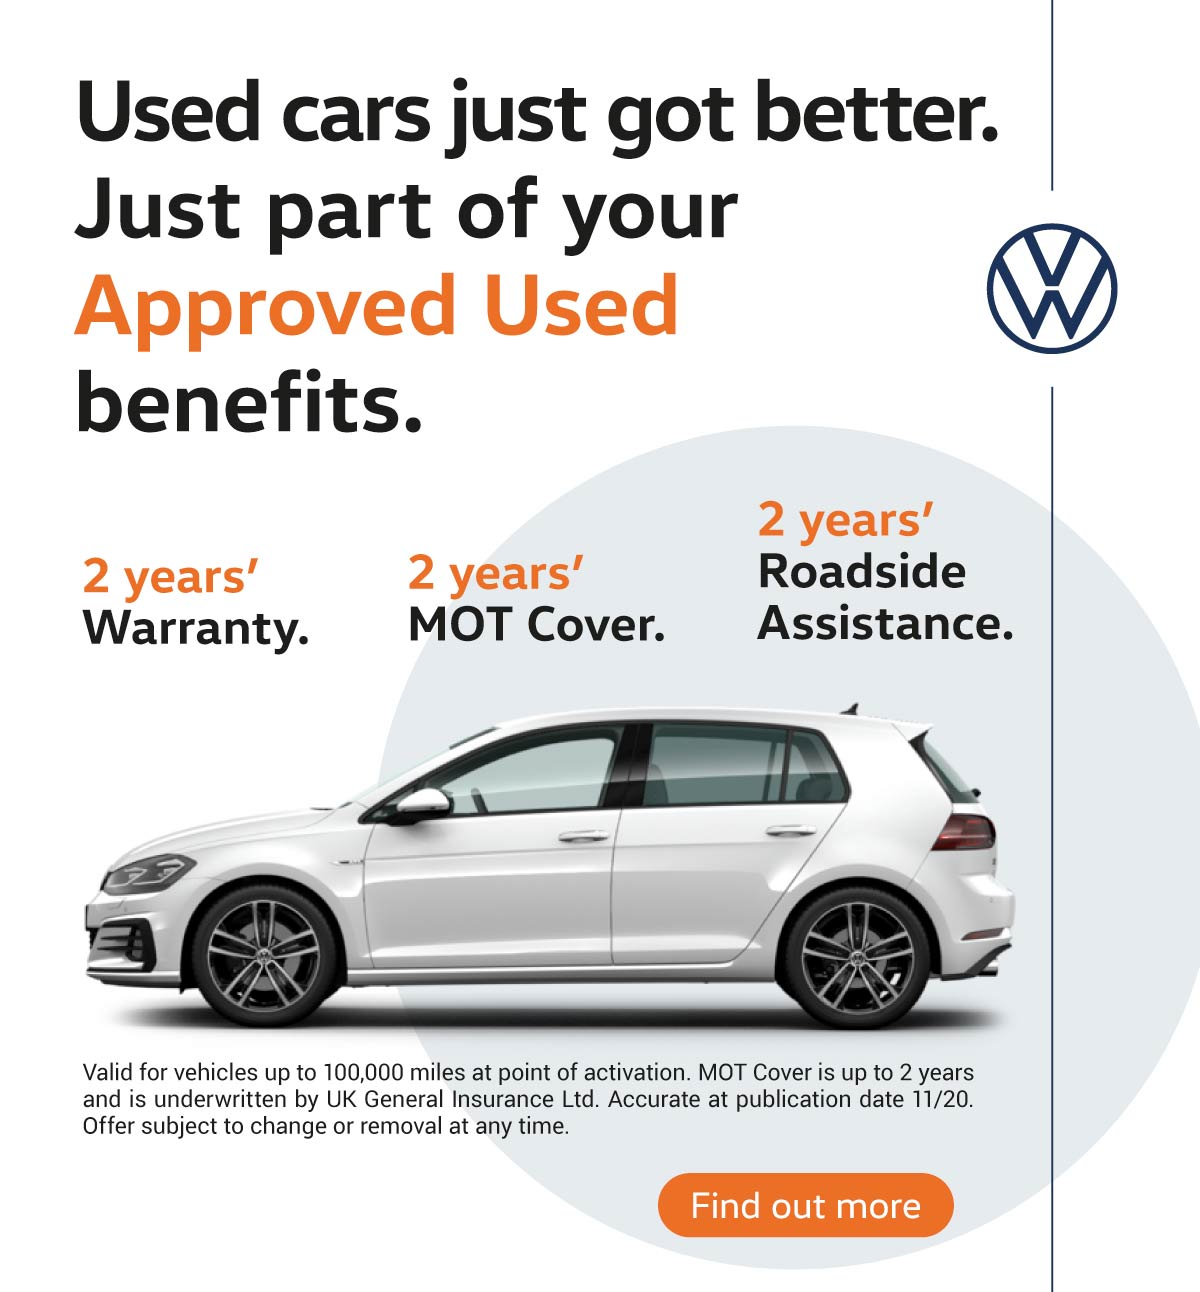 Volkswagen Approved Used 041120